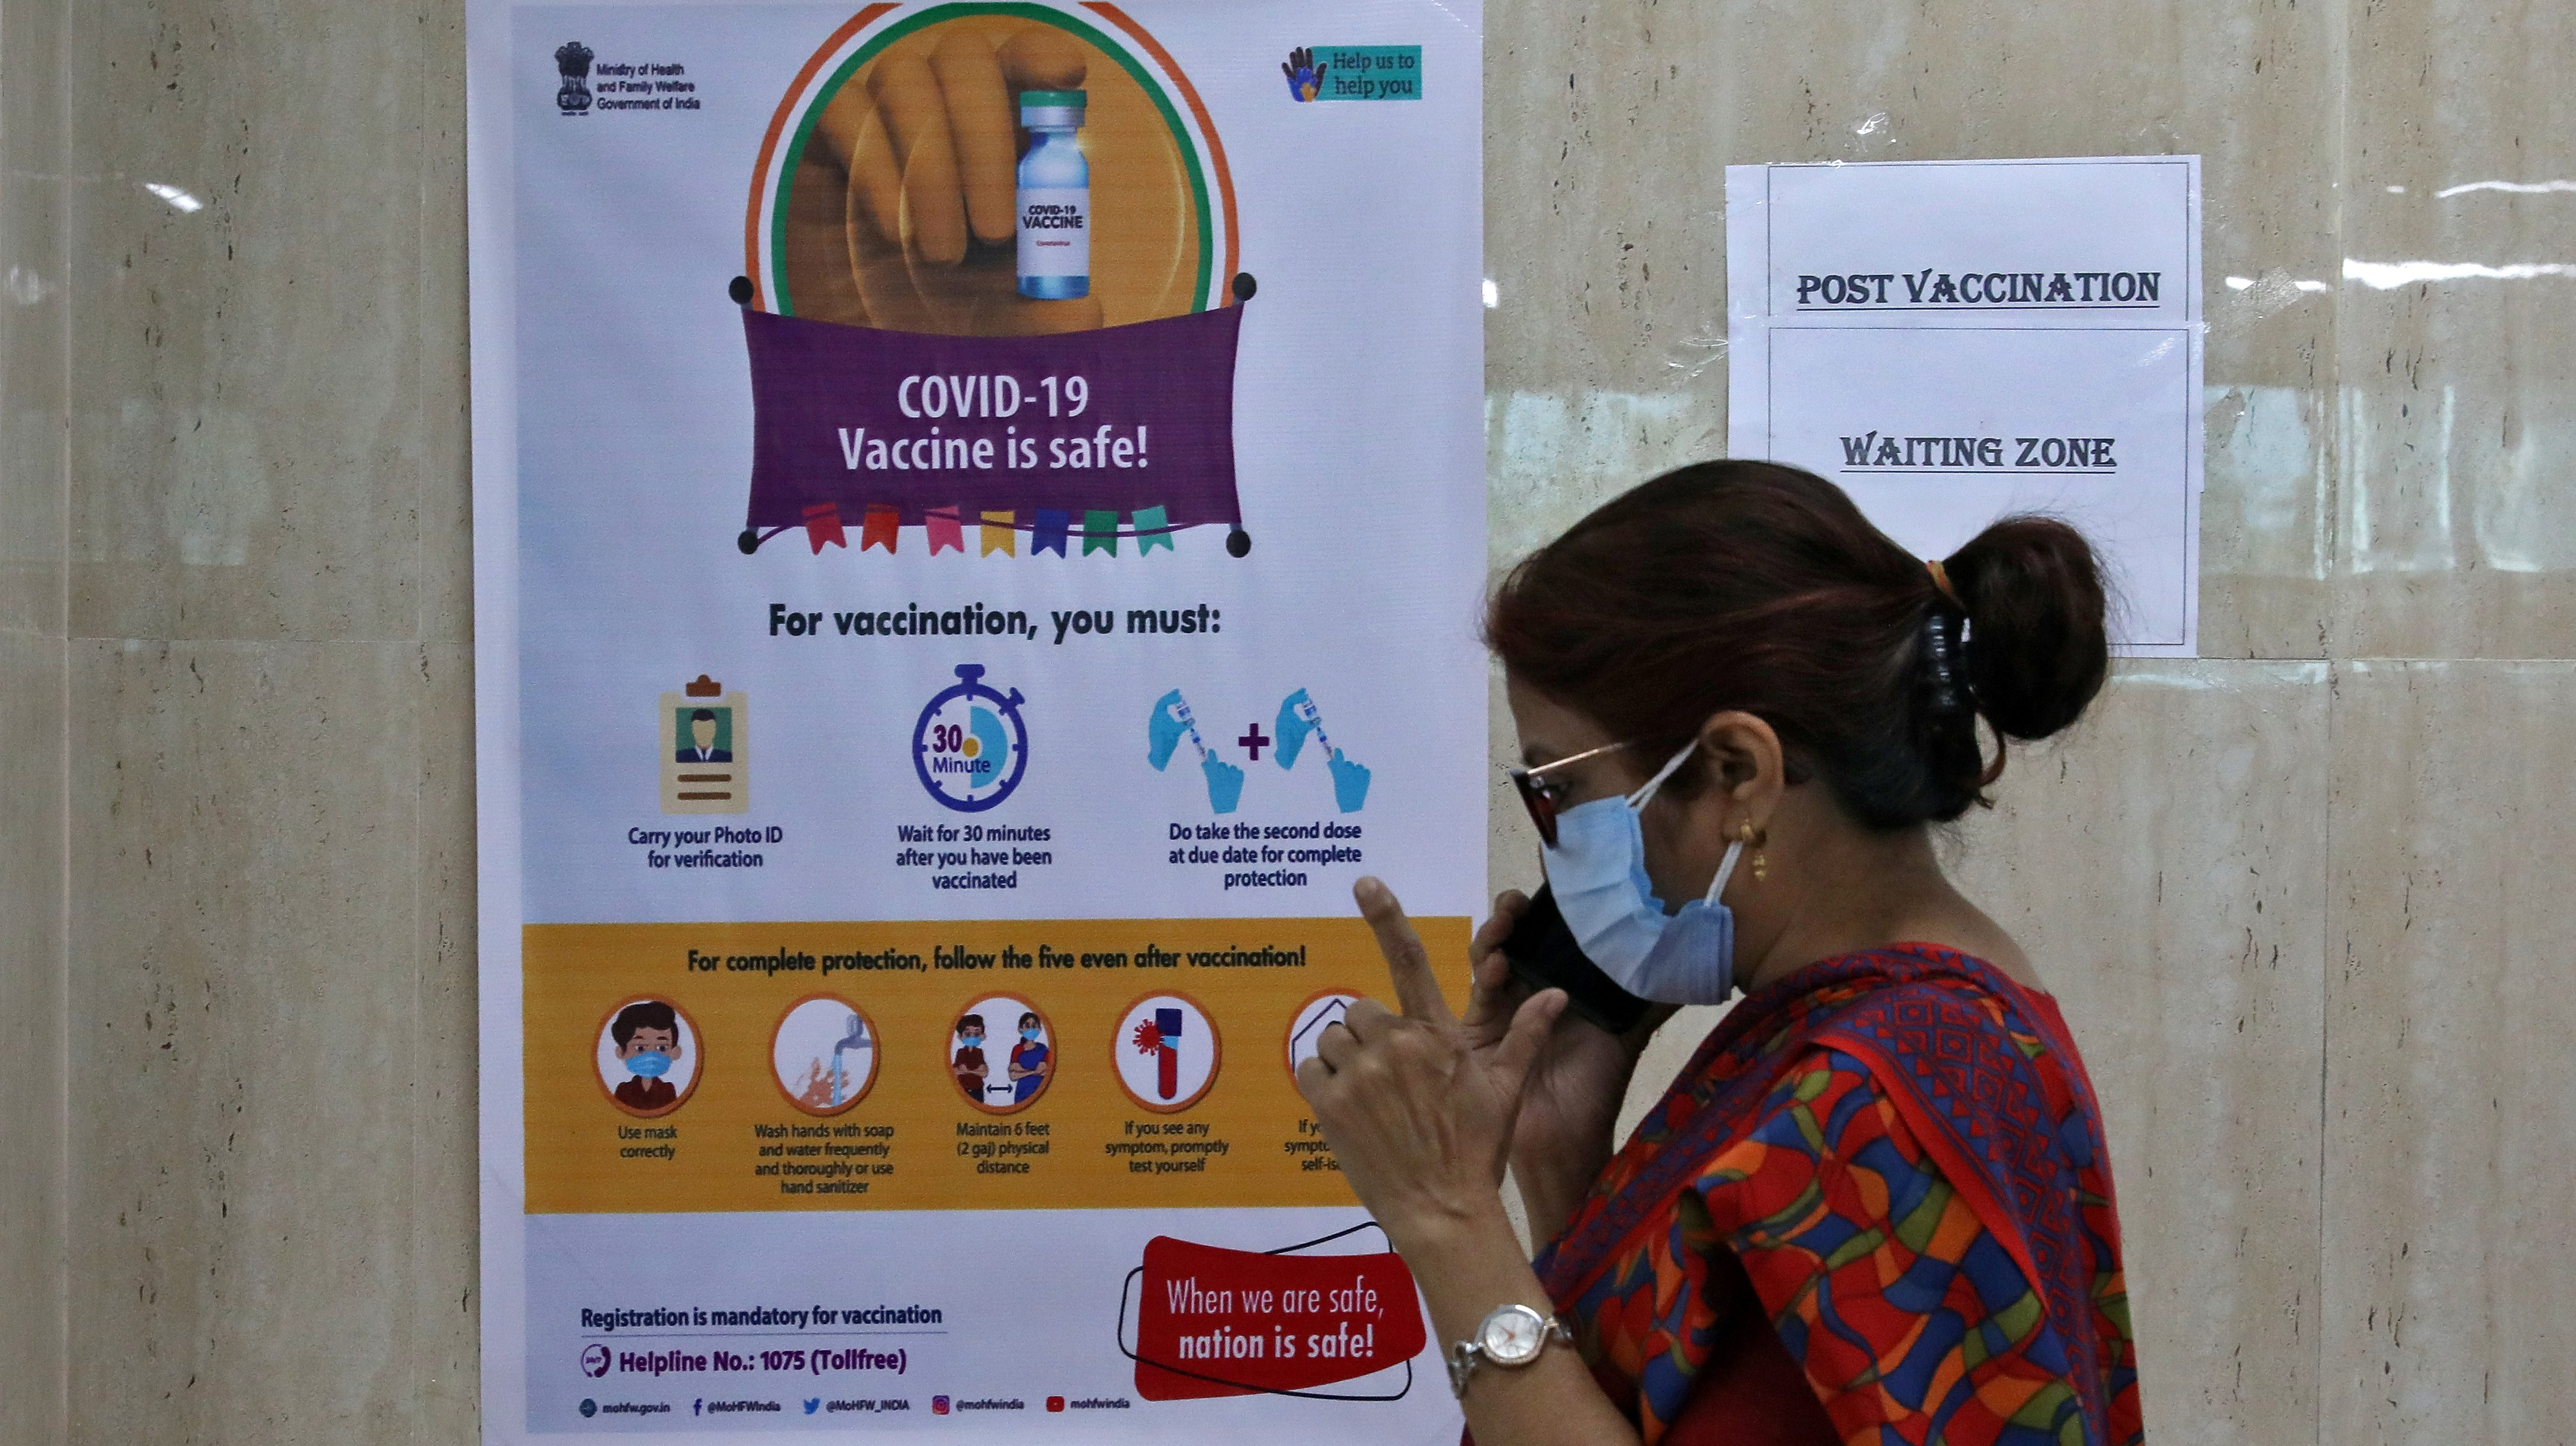 FILE PHOTO: A woman speaks inside a waiting zone area at a health clinic where COVID-19 vaccination is being given to healthcare workers in Kolkata